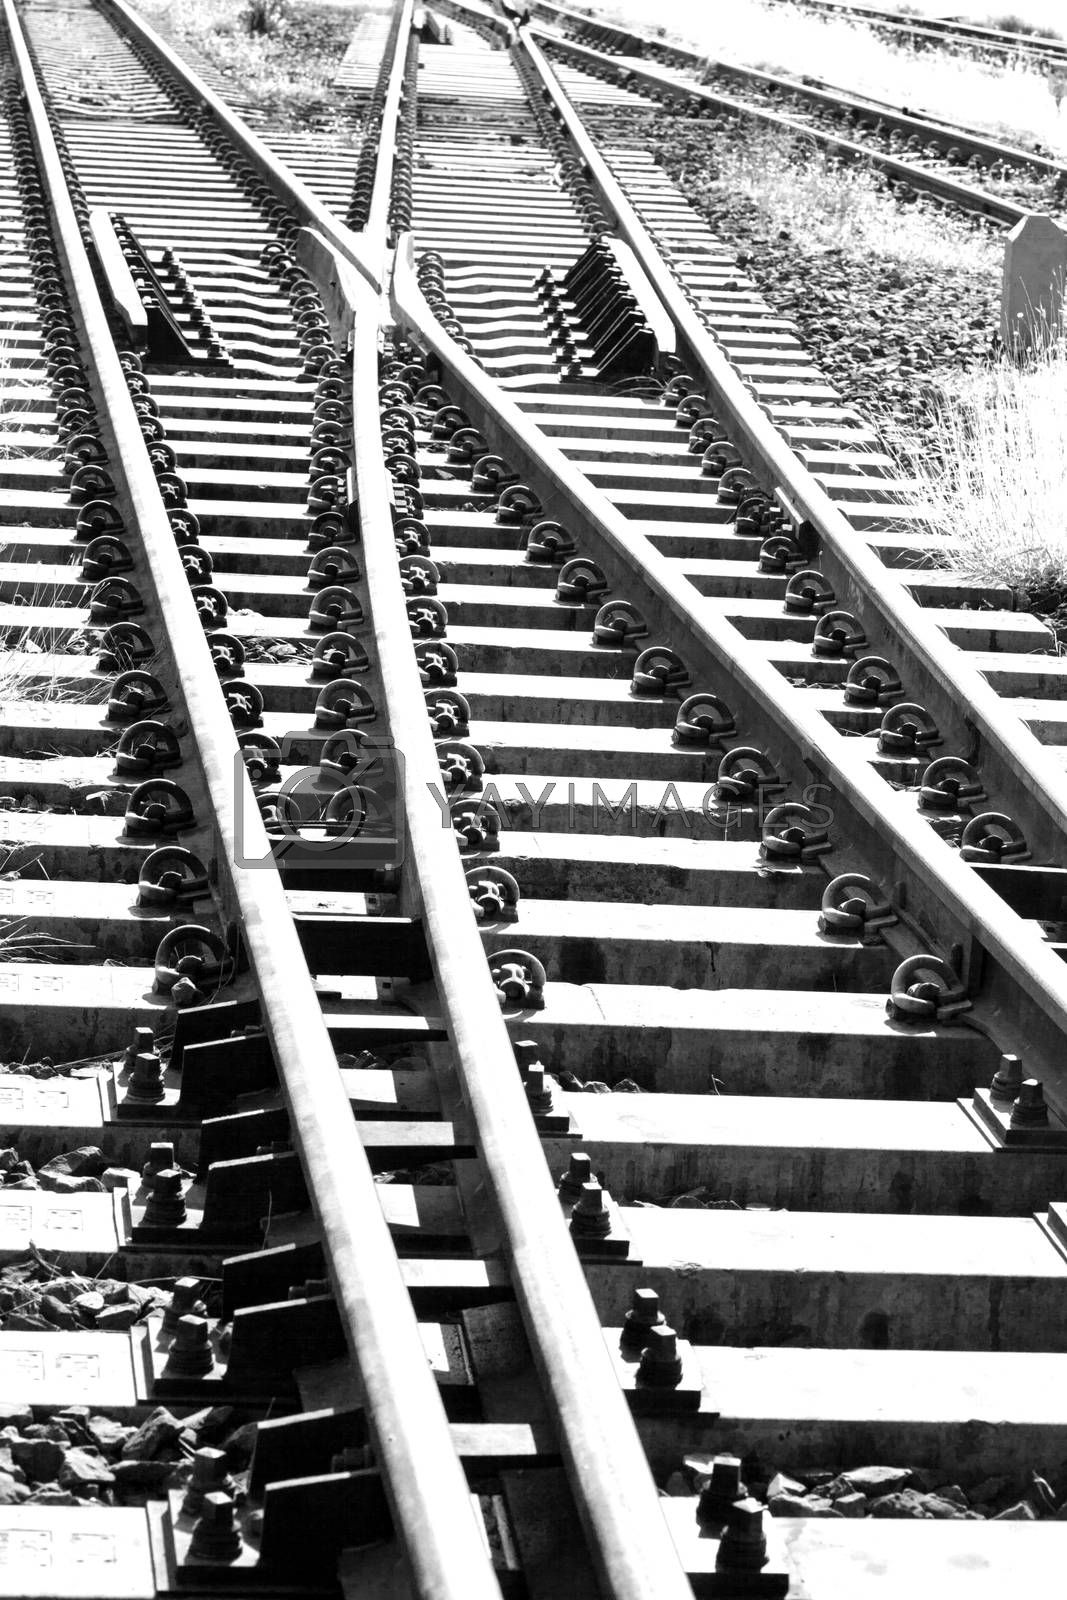 Railroad tracks at a train station Thailand.black and white picture